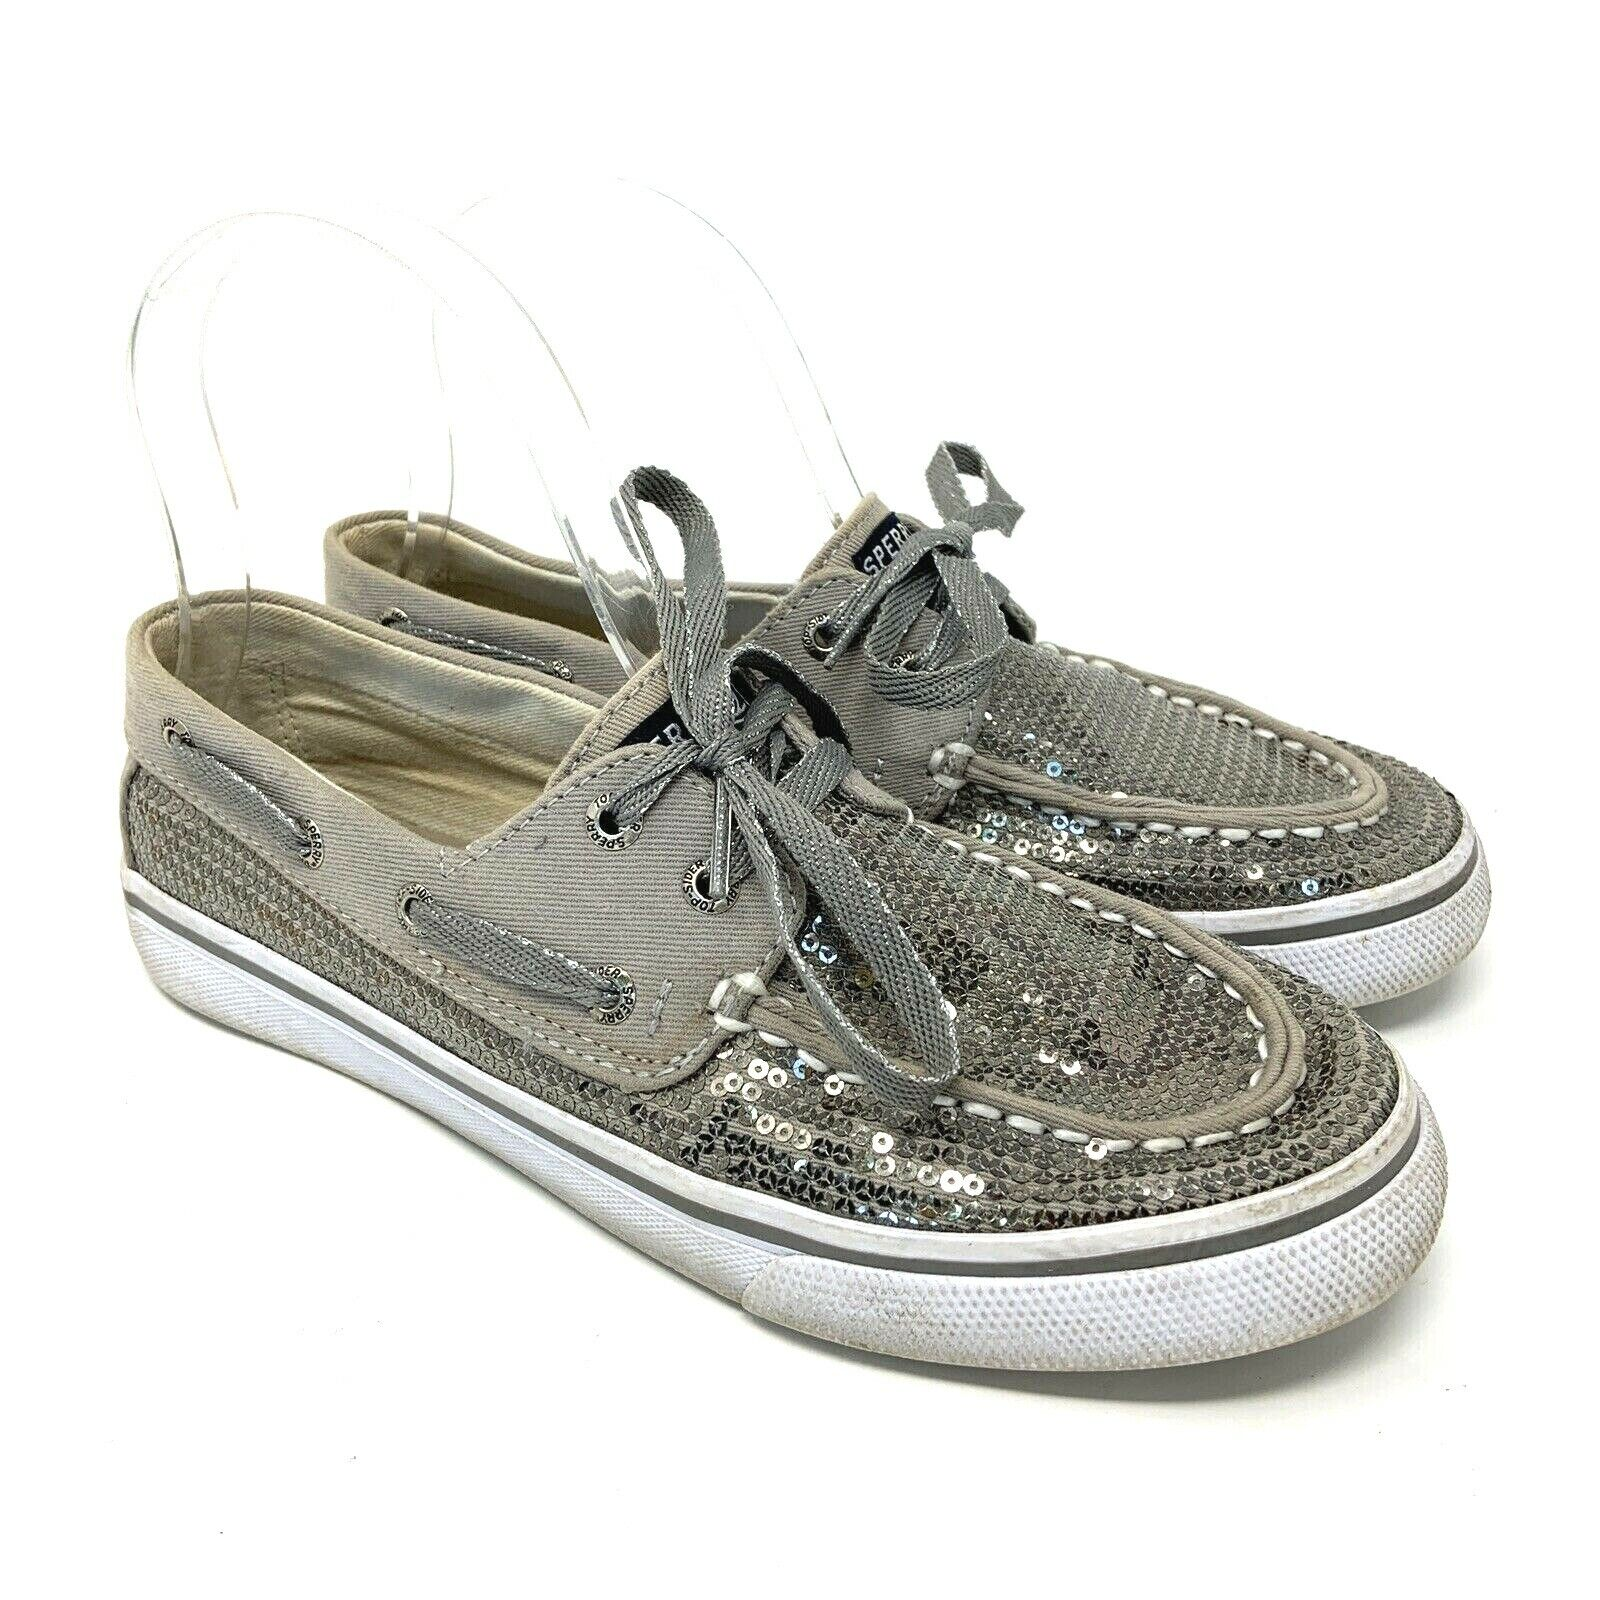 Sperry Top Sider Womens Shoe Size 4 Gray Silver Sequin Boat Deck Lace up Loafer